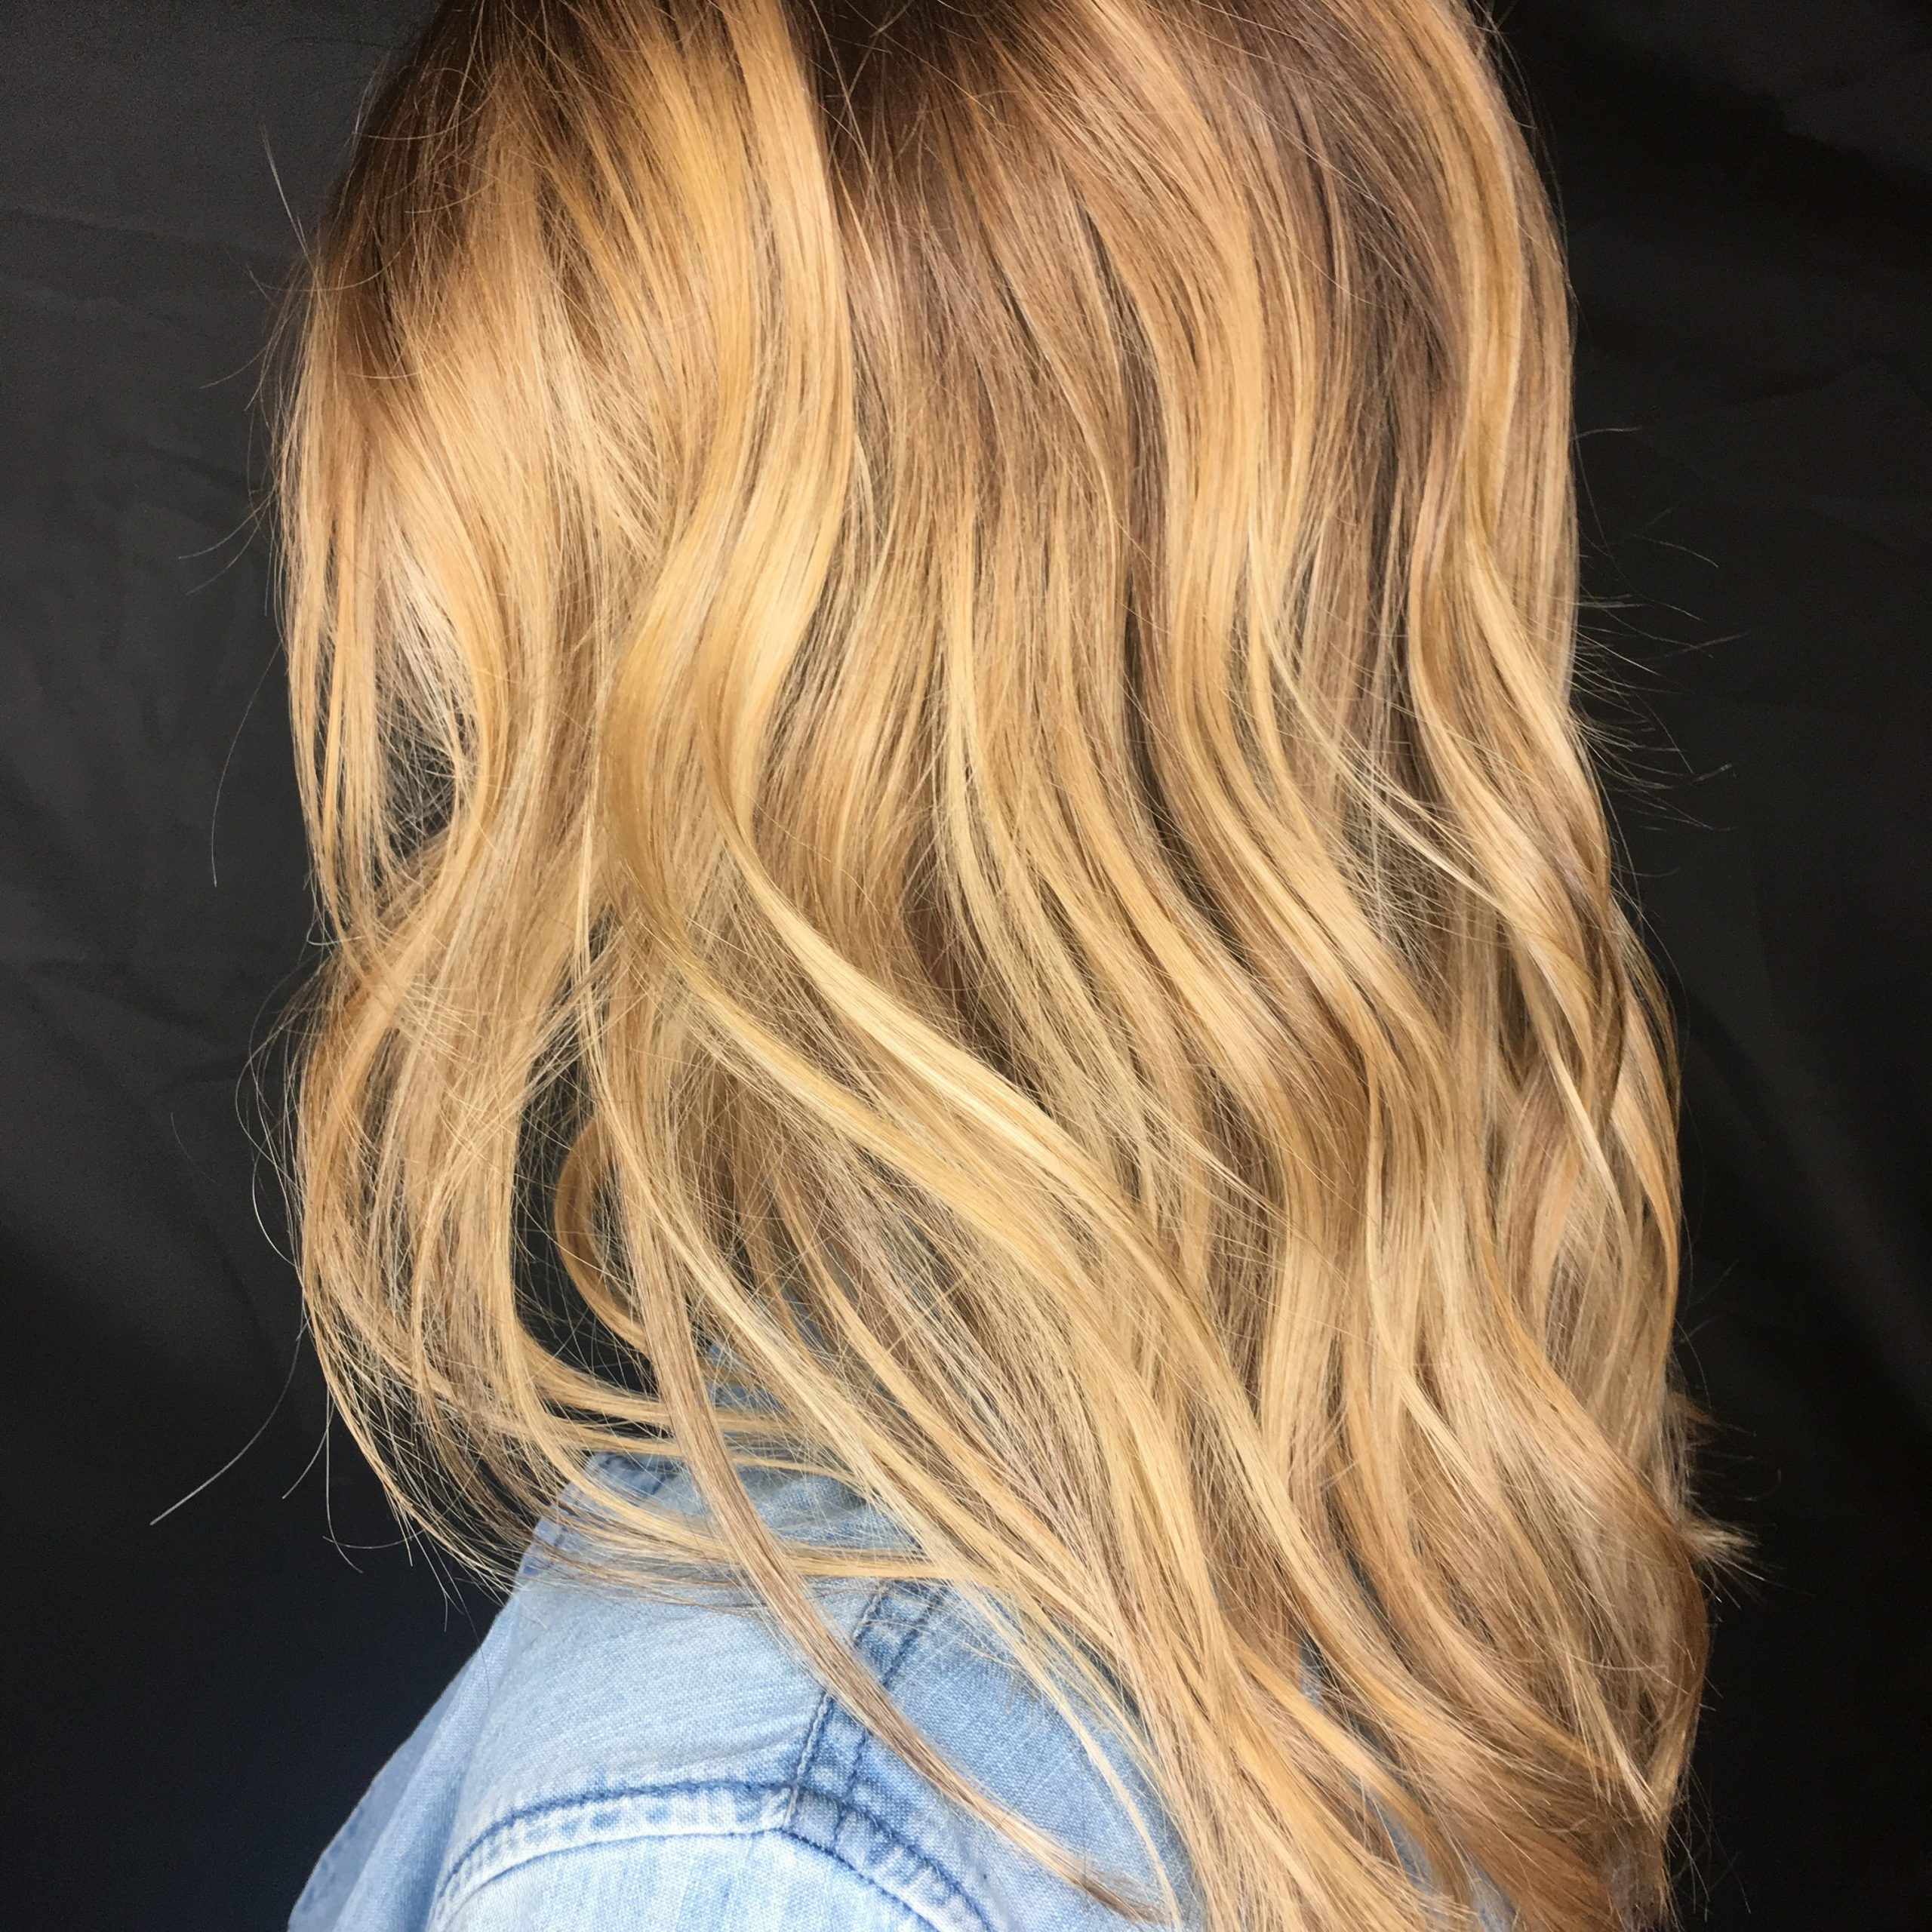 Popular Golden Blonde Balayage On Long Curls Hairstyles Inside Honey Blonde, Blonde Hair, Balayage And Babylights, From (View 14 of 20)